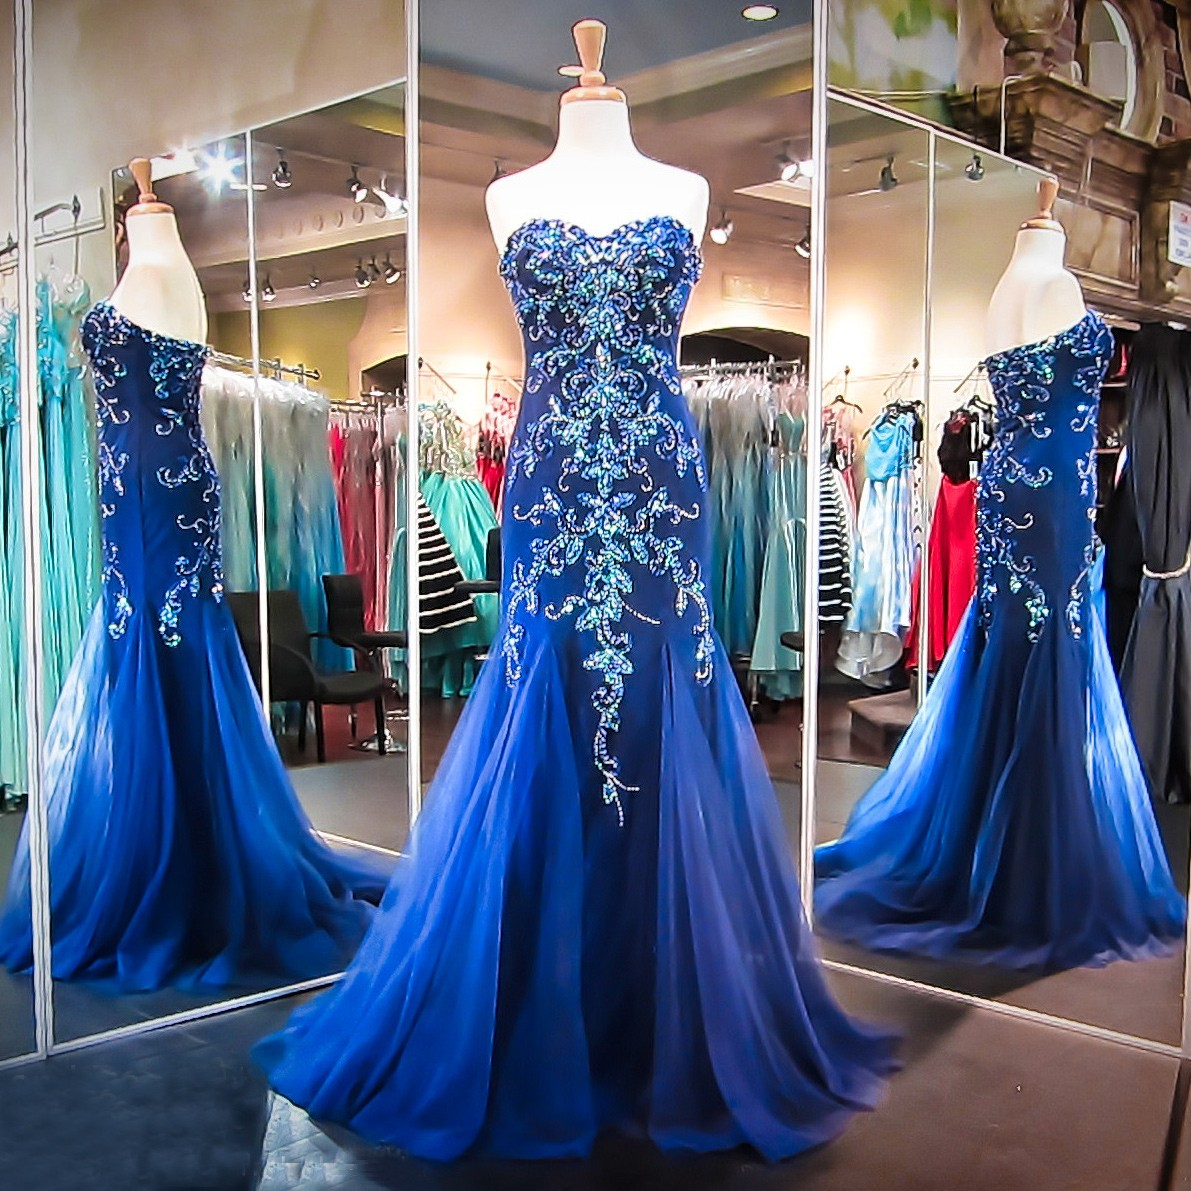 Luxurious Mermaid Long Prom Dress - Royal Blue Sweetheart with Beading